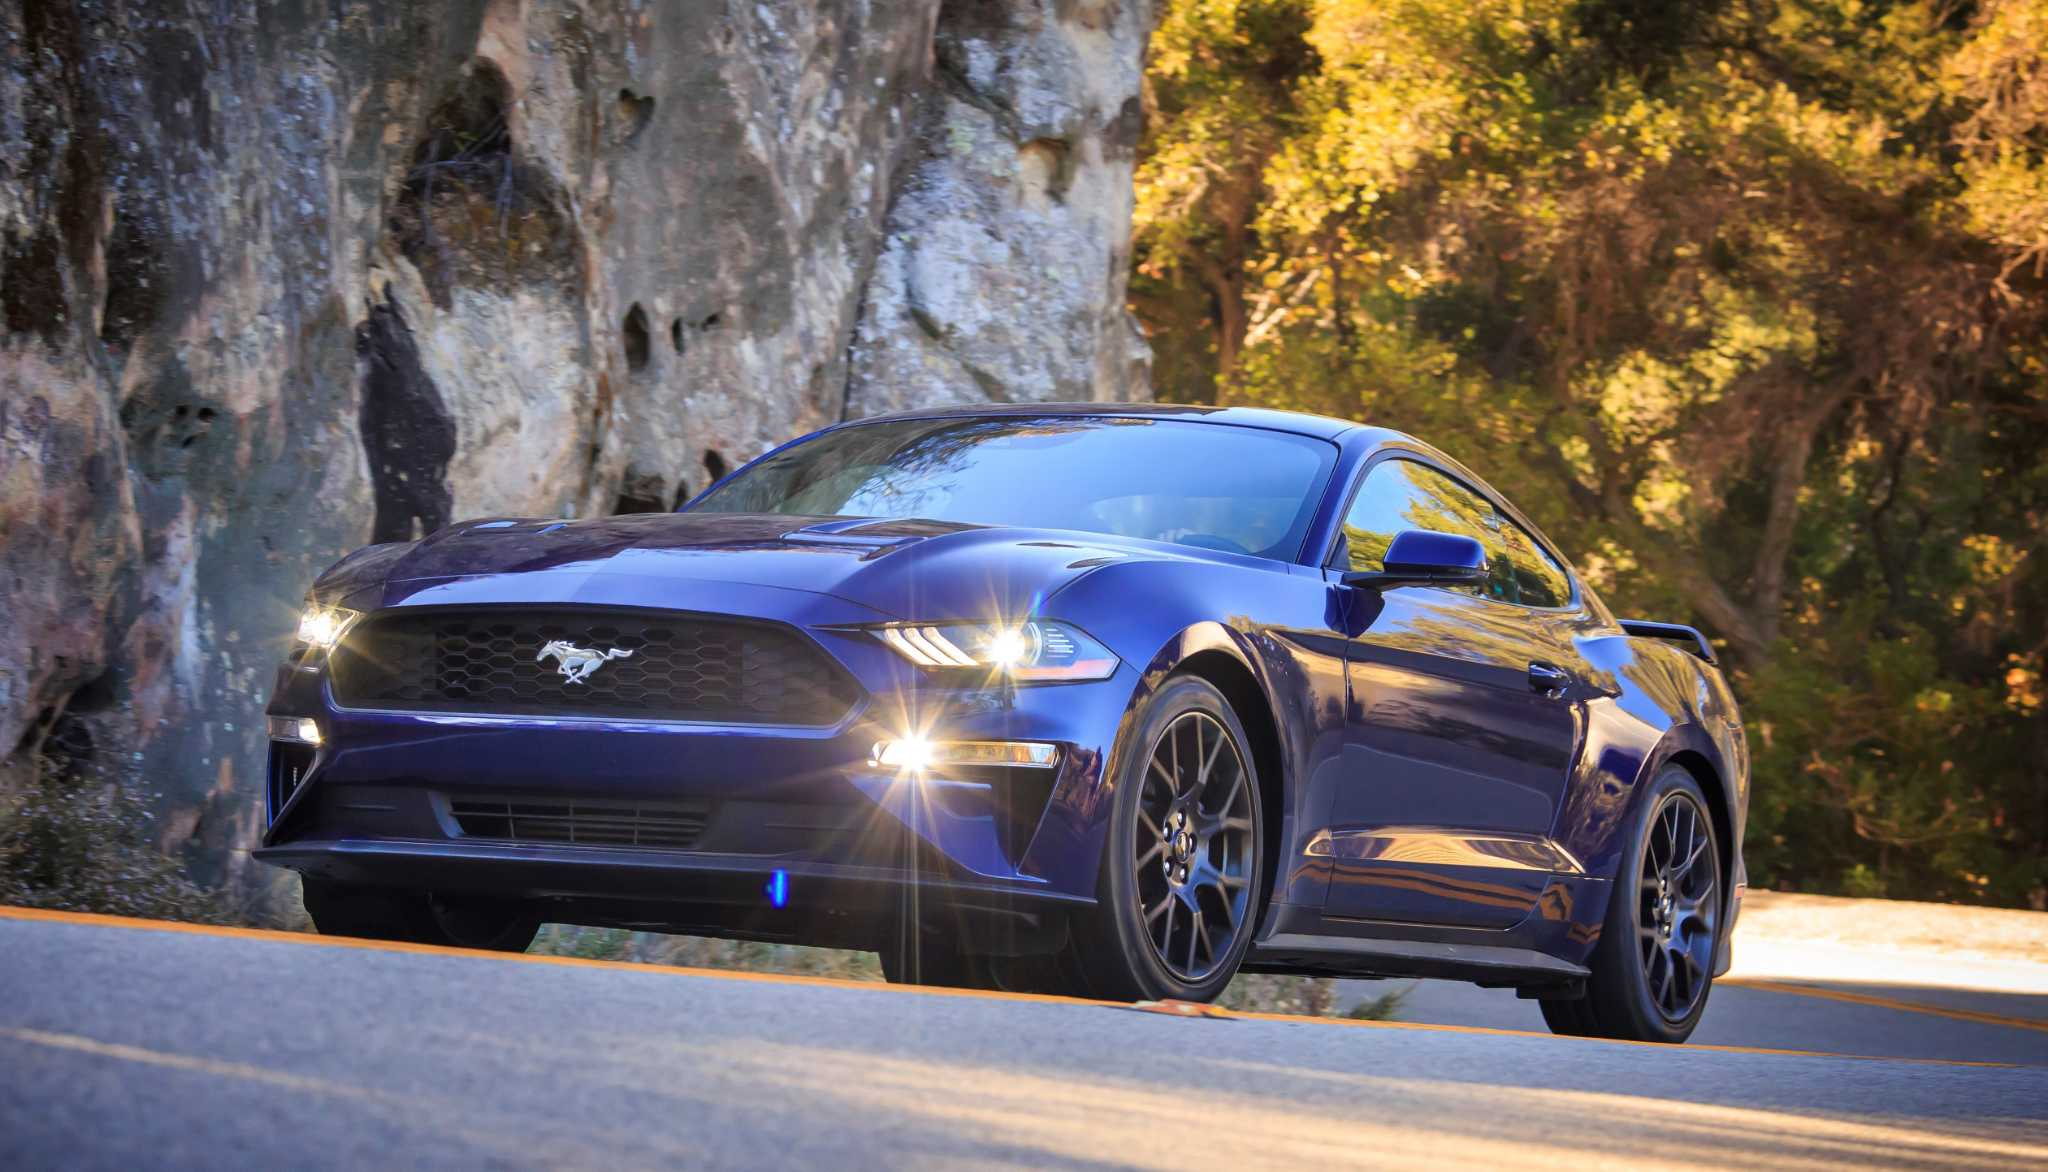 Mustang magic Ford freshens iconic muscle car for more hustle, agility